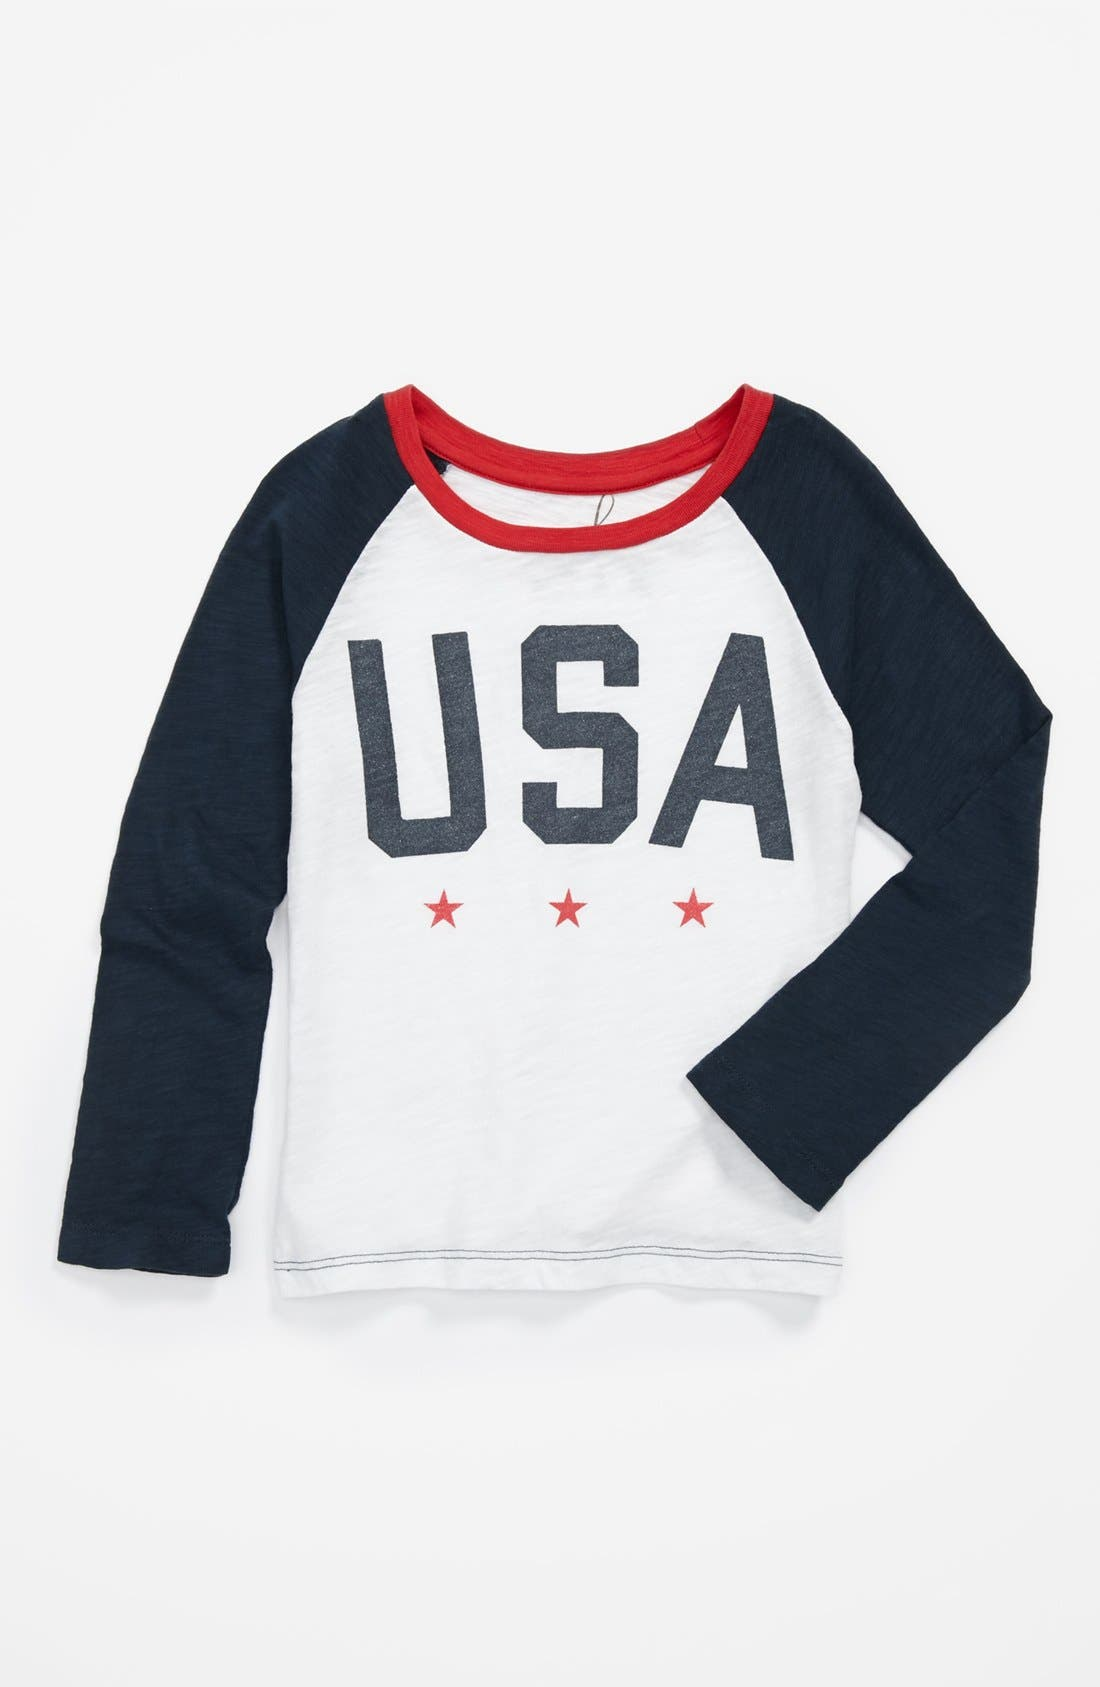 Alternate Image 1 Selected - Peek 'USA' Tee (Big Girls)